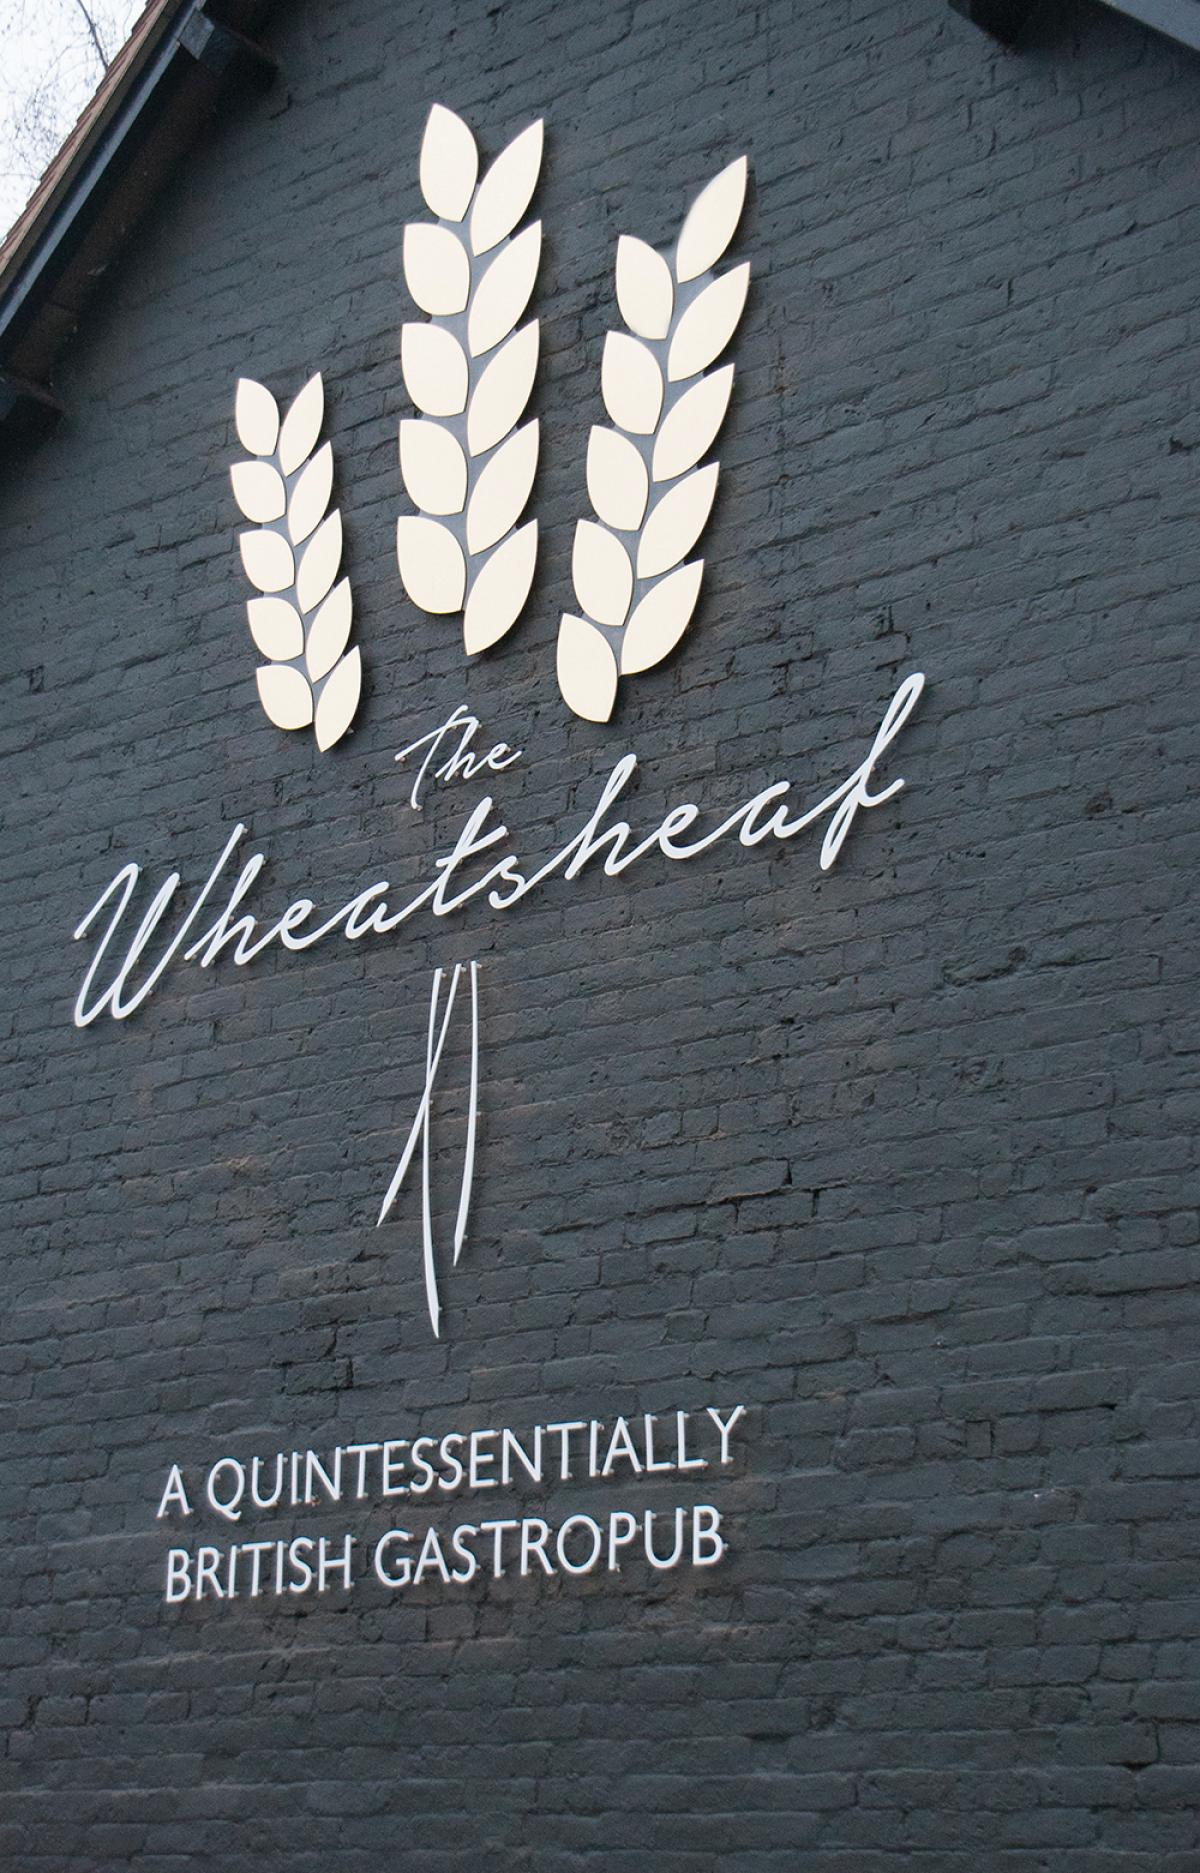 Images from The Wheatsheaf